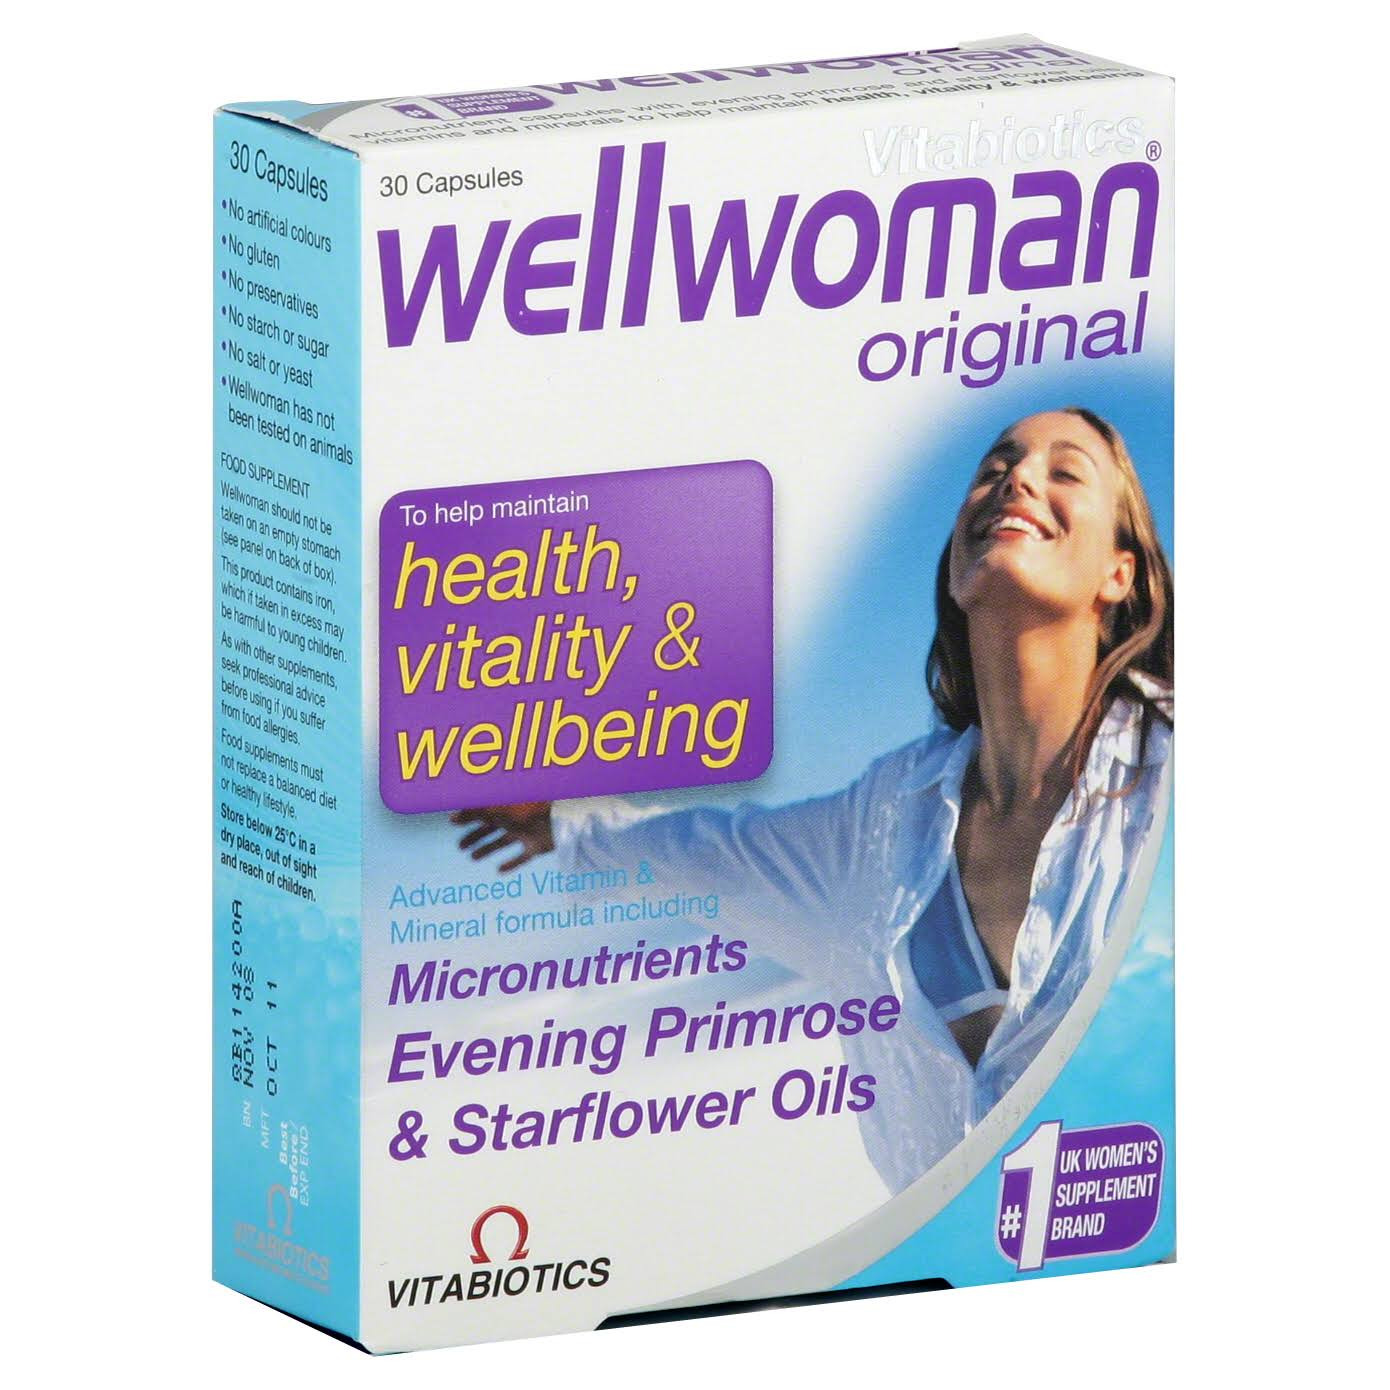 Vitabiotics Wellwoman Original Tablets - 30 Capsules